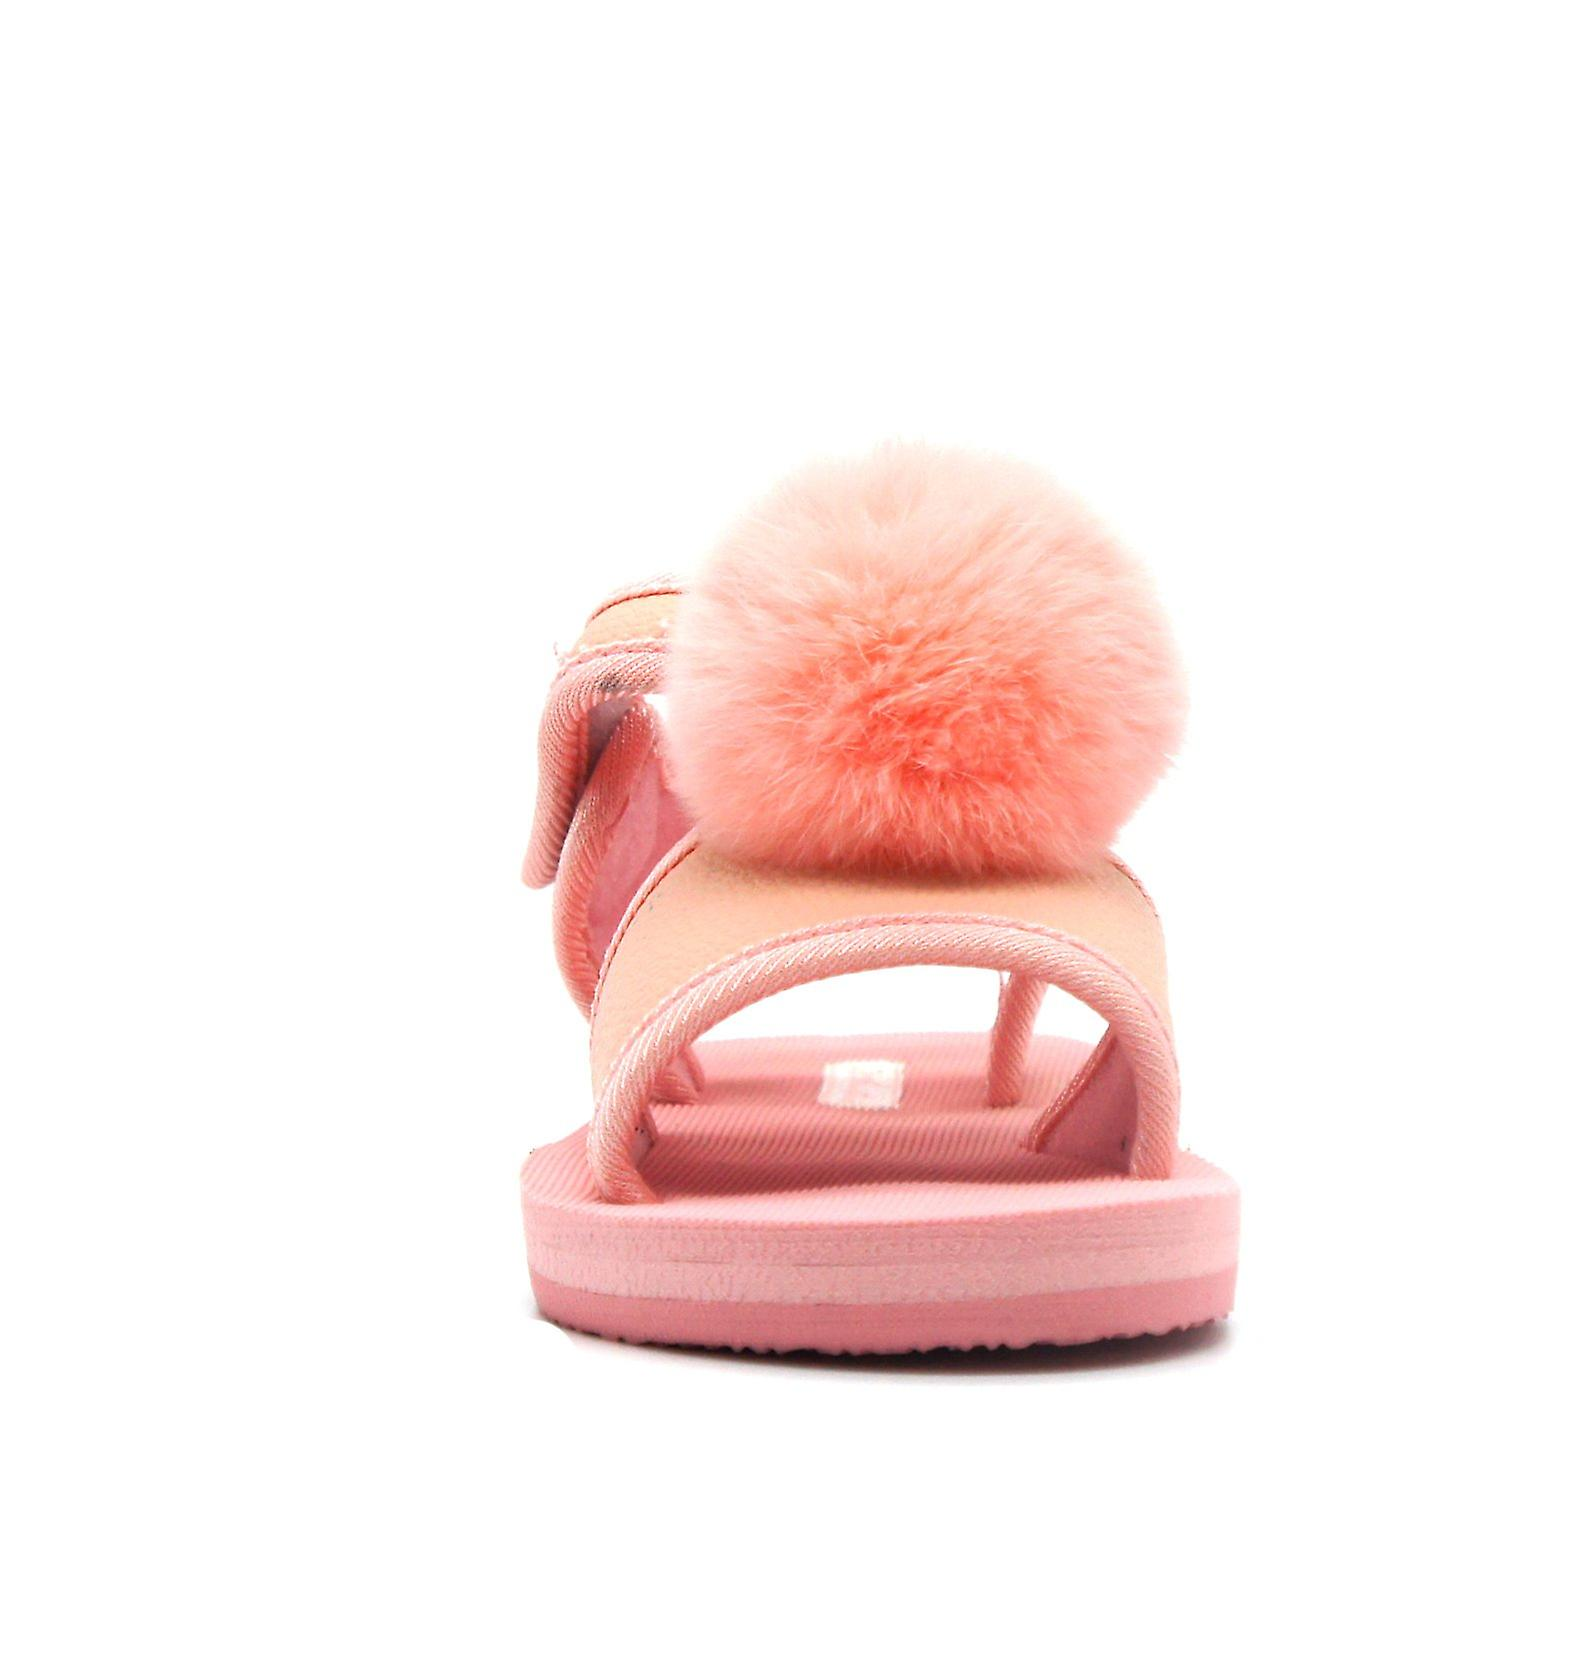 Atlantis Shoes Kids Girls Supportive Cushioned Comfortable Sandals Fluffy Baby Pink